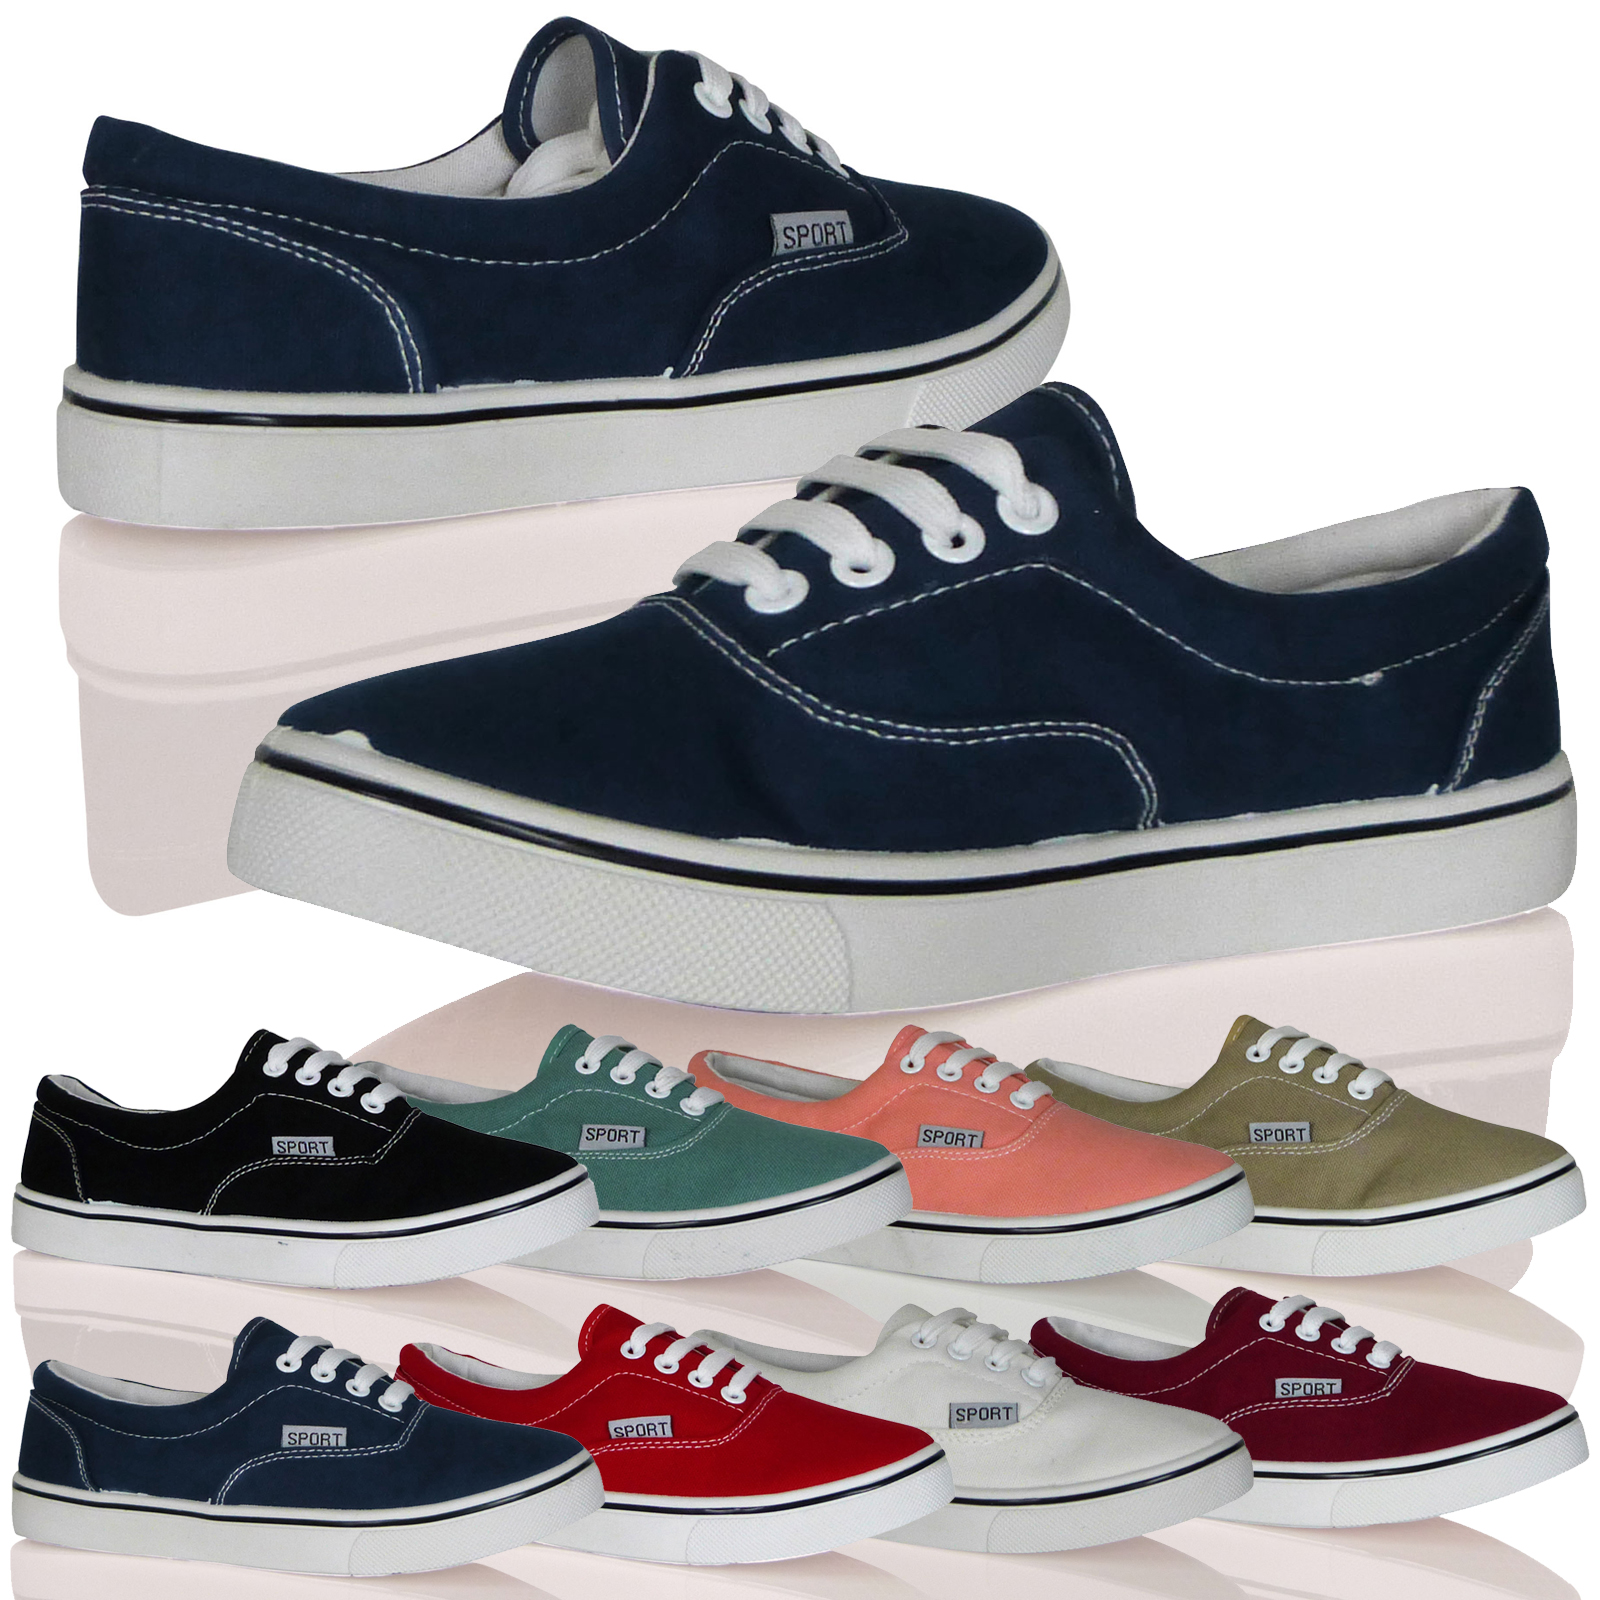 WOMENS LADIES TRAINERS SNEAKERS LACE UPS CANVAS PLIMSOLES FASHION PUMPS NEW SIZE